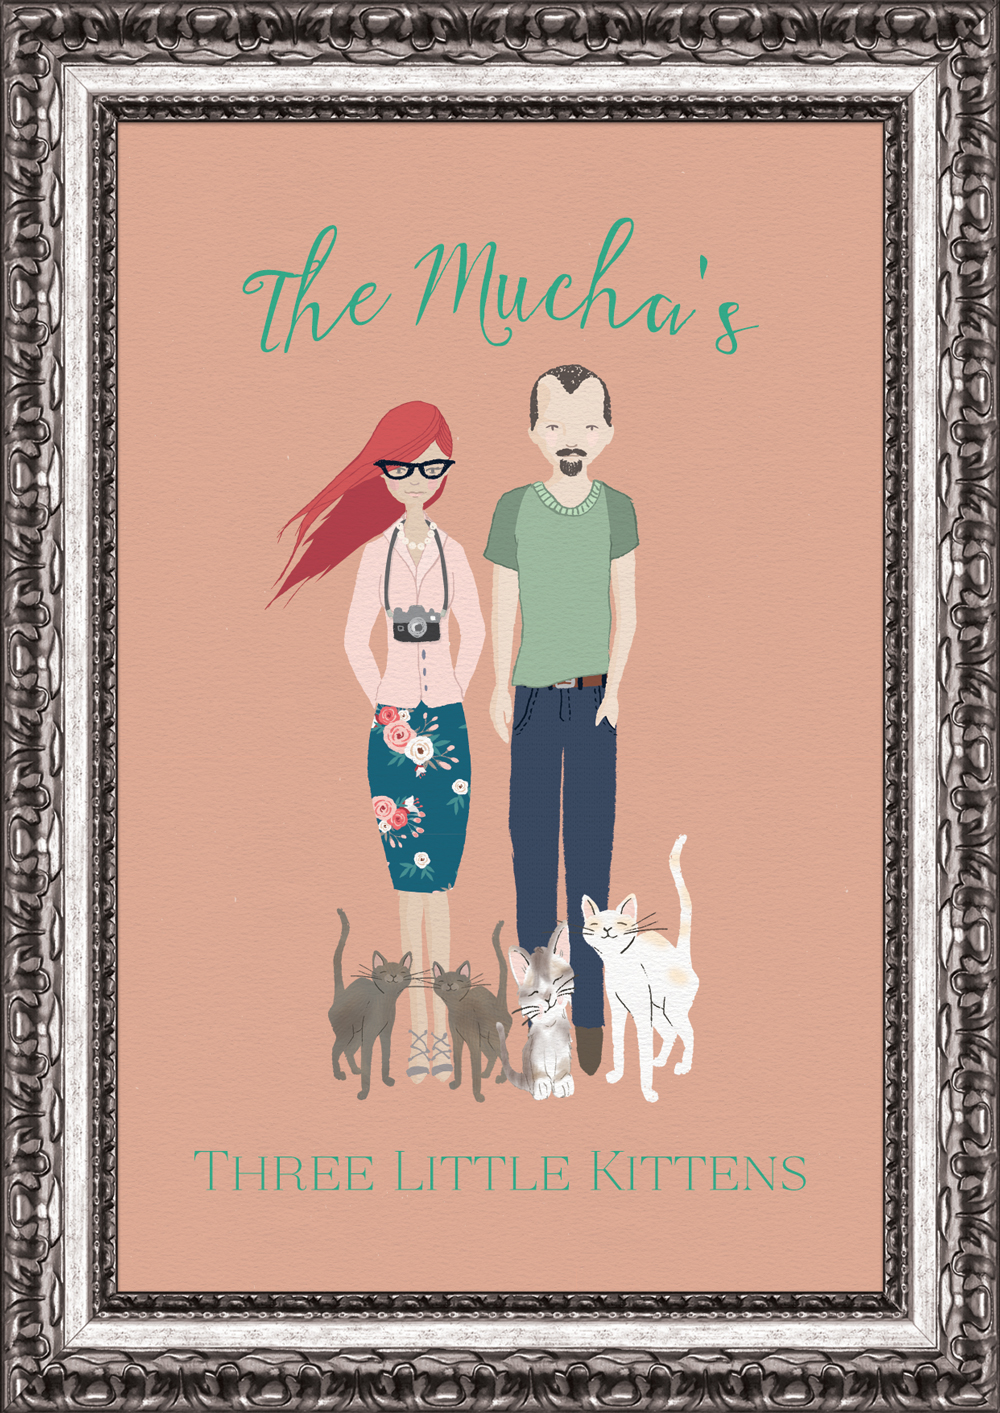 THREE LITTLE KITTENS | Keith & Teresa Mucha | Dixie, Pixie, Katiebelle & Spencer